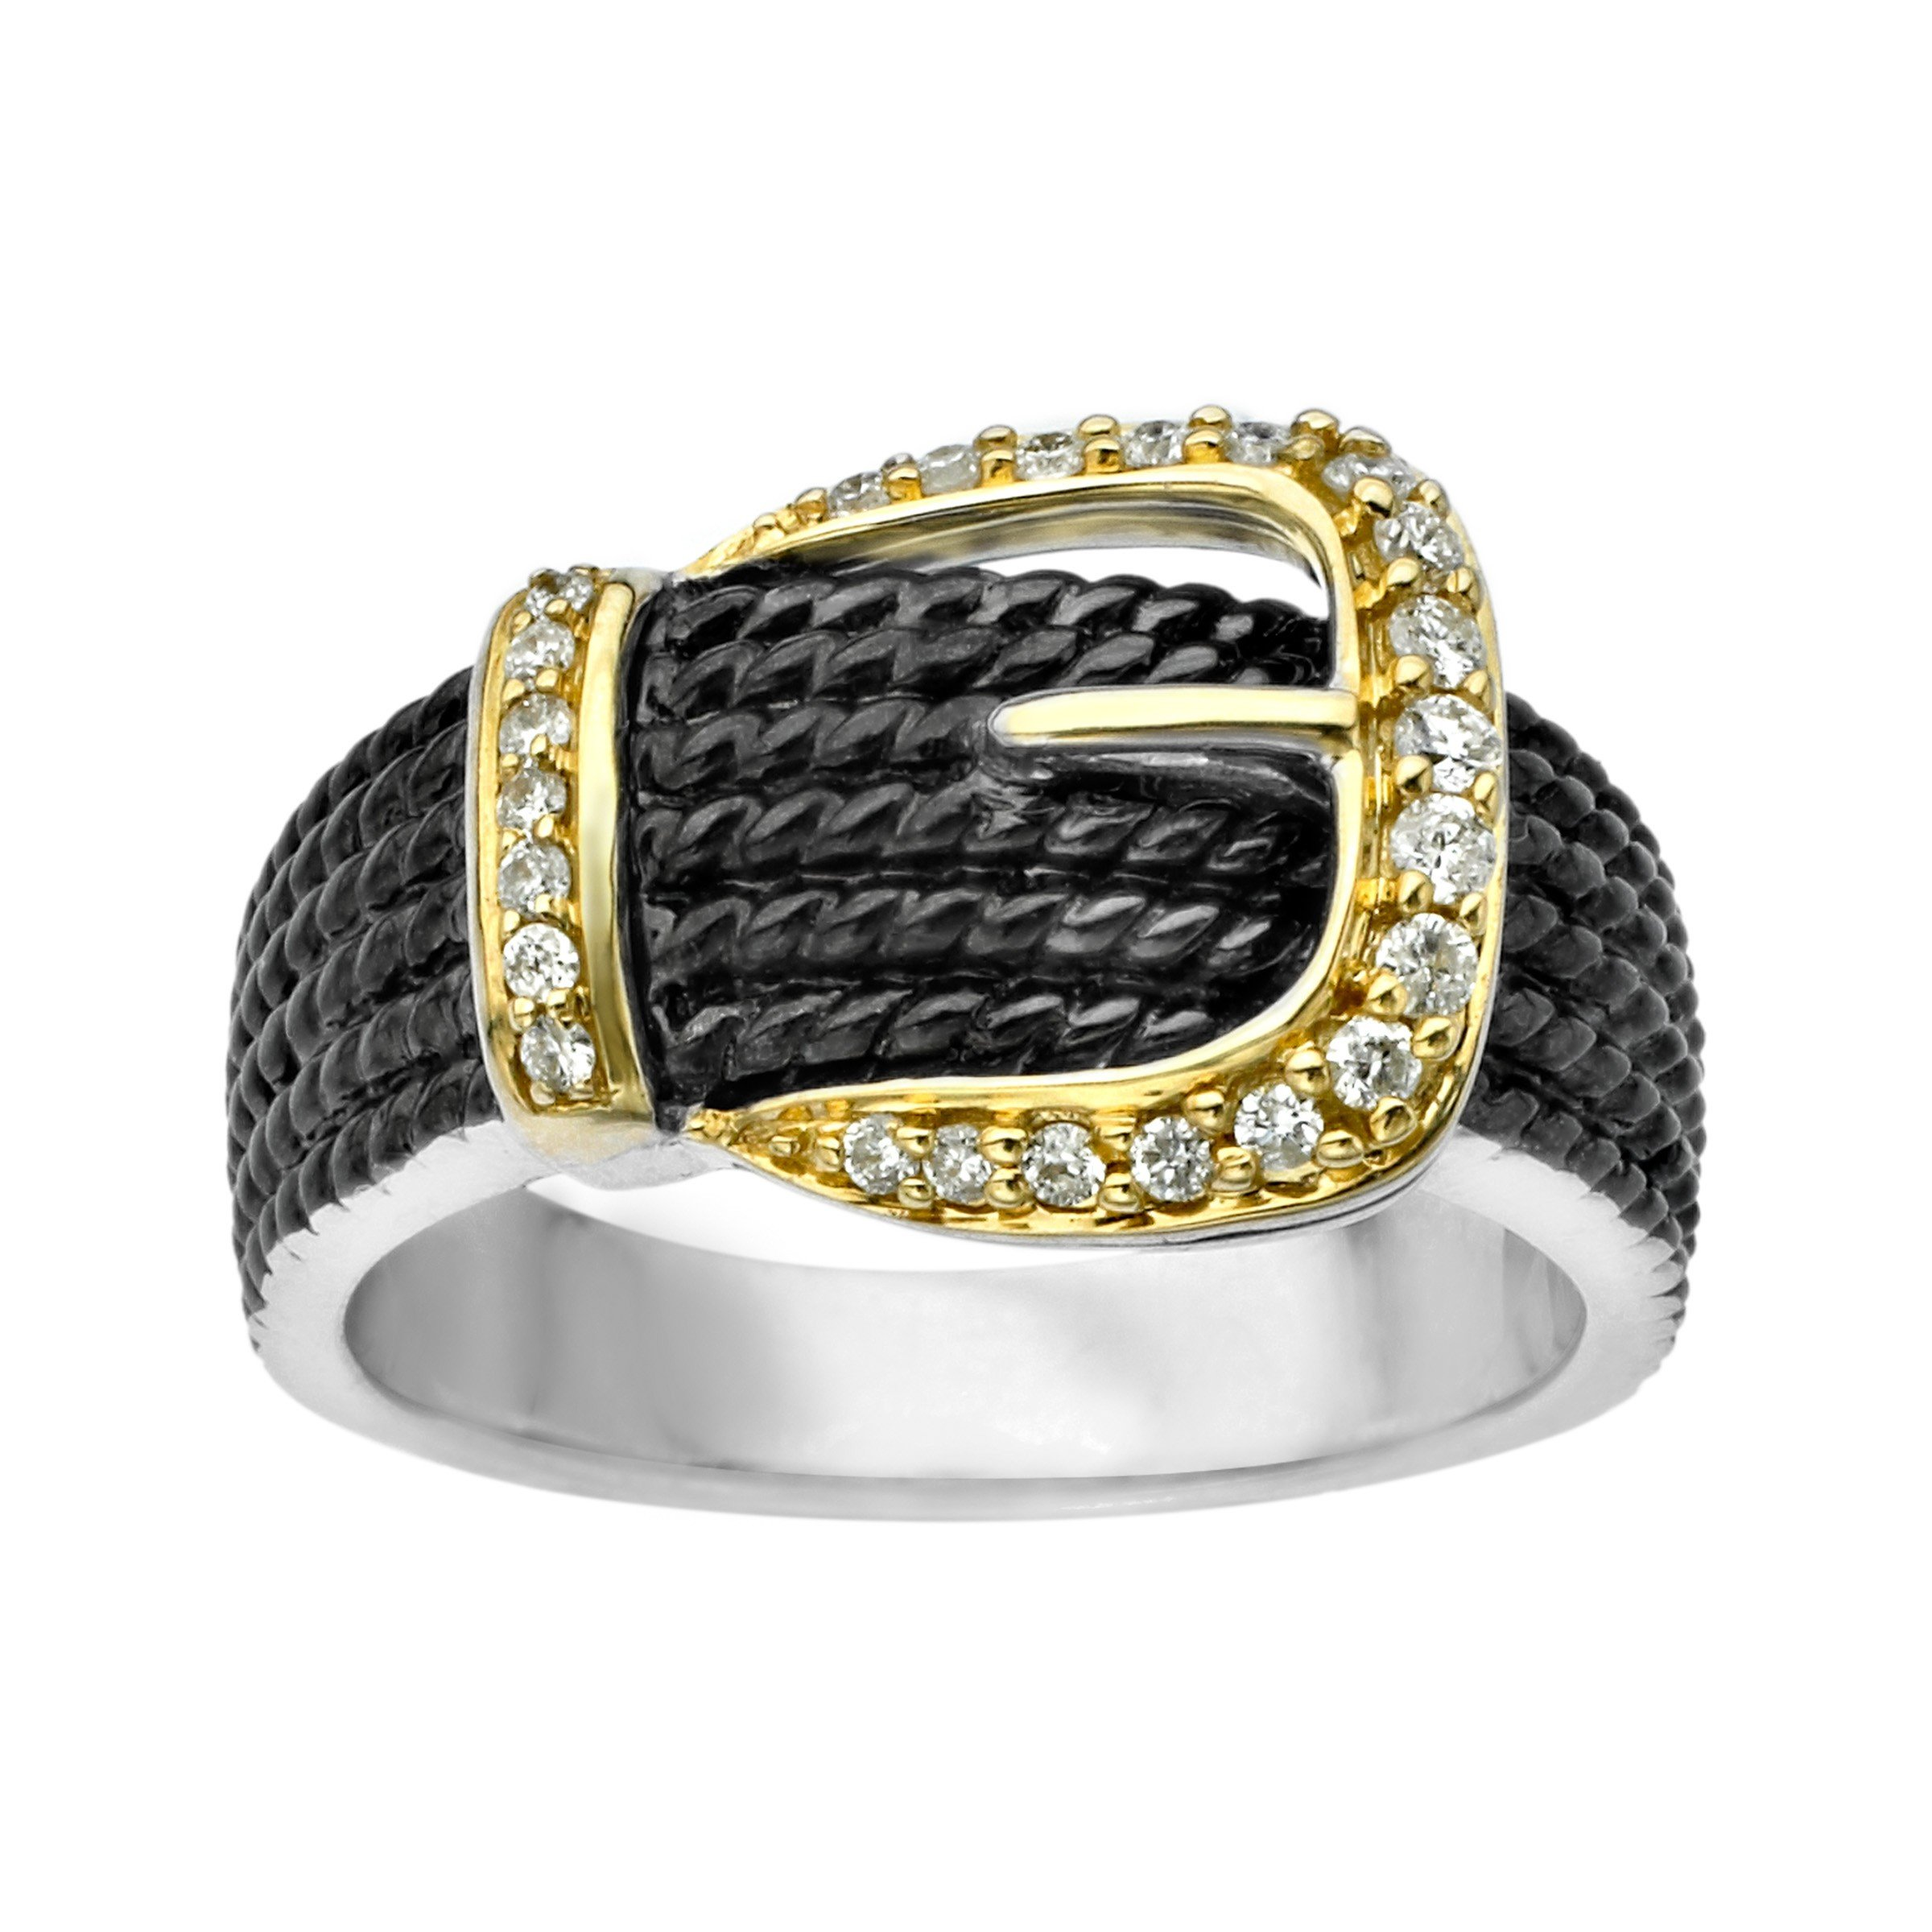 1/5 ct Diamond Buckle Ring in Sterling Silver & 14K Gold Size 7